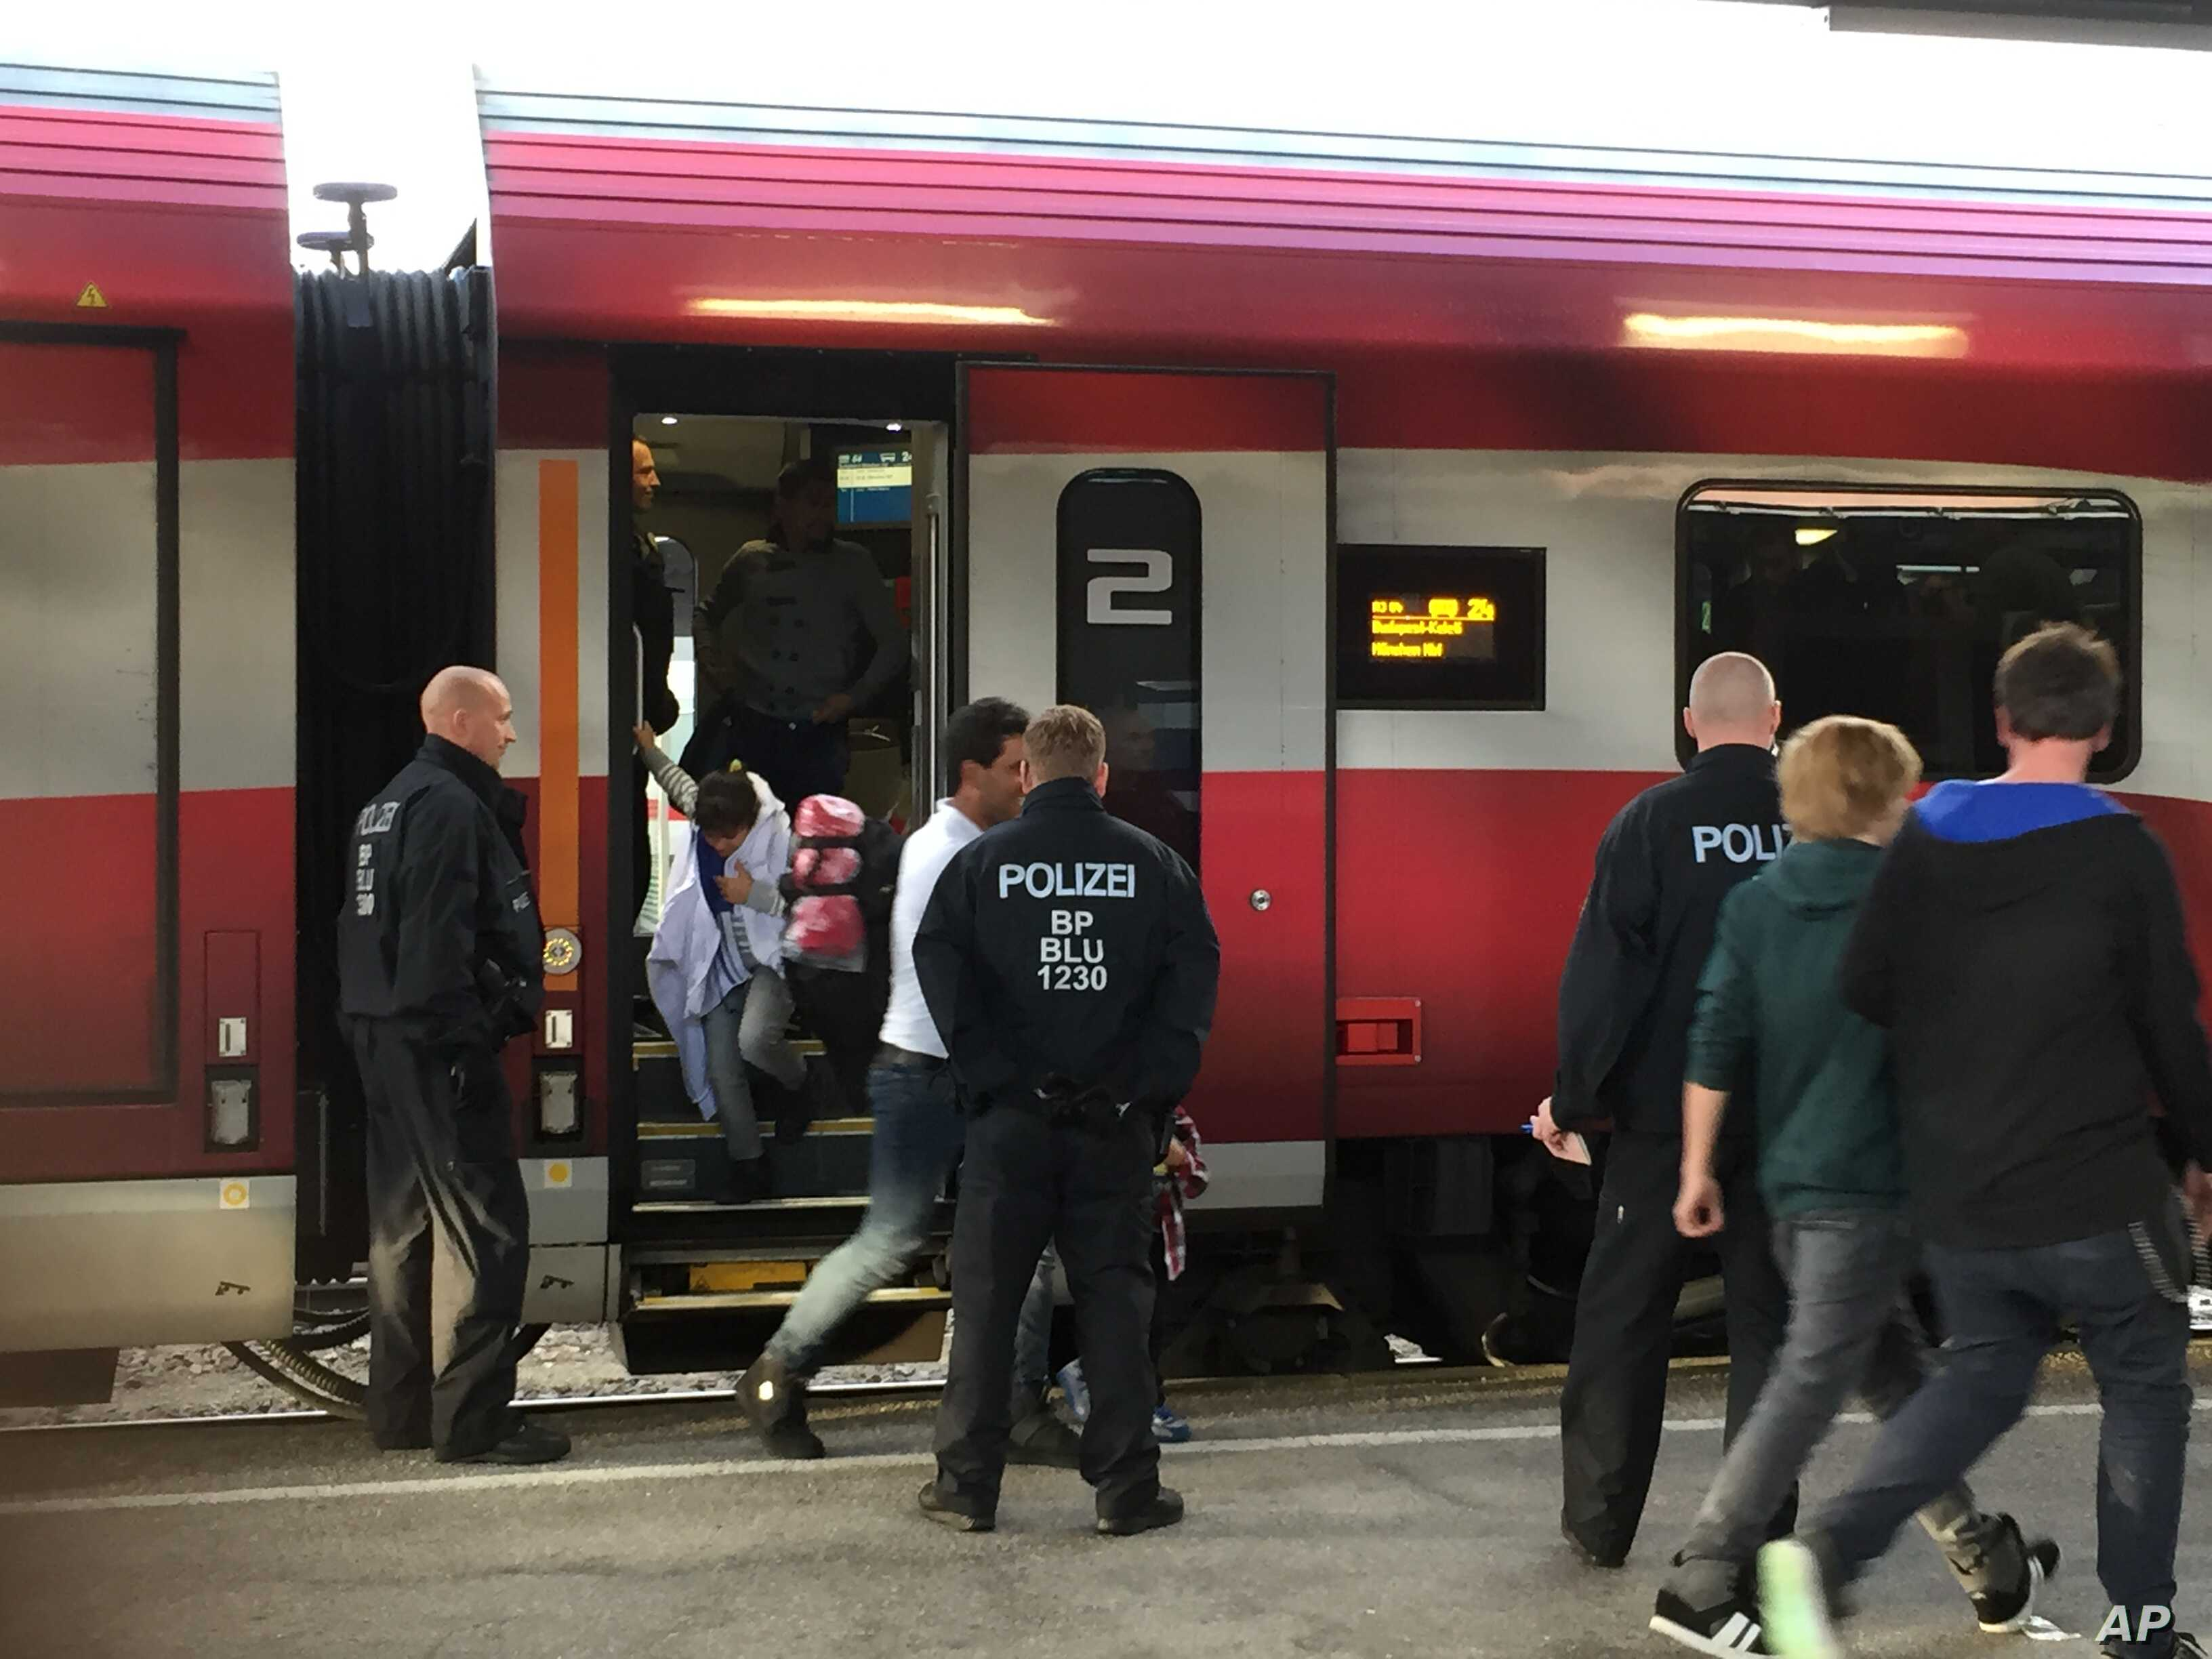 German police pull migrants off a train from Budapest and Vienna as part of new border control measures meant to ease the pressure on Munich, until now the main entry point for migrants reaching Germany, Sept. 14, 2015. (L. Ramirez/VOA)